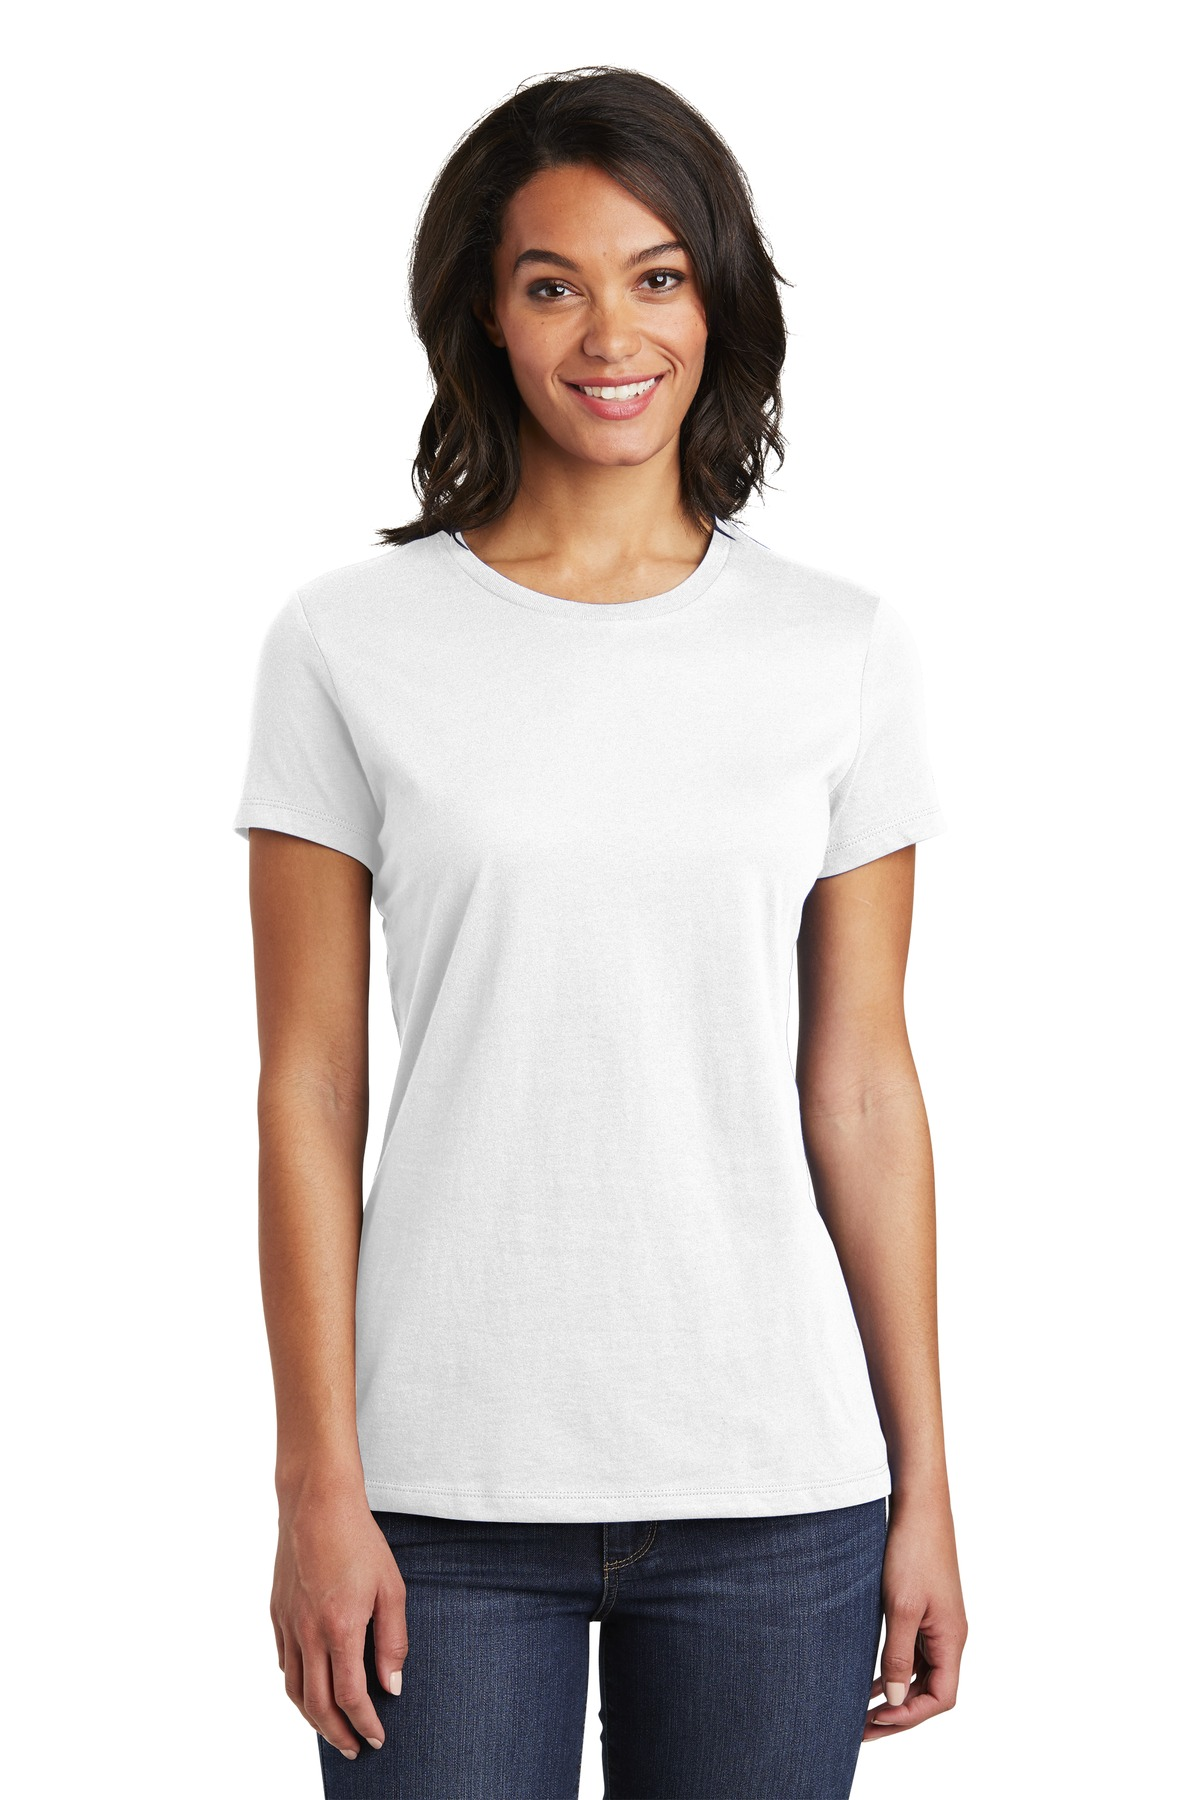 District  ®  Women's Very Important Tee  ®  . DT6002 - White